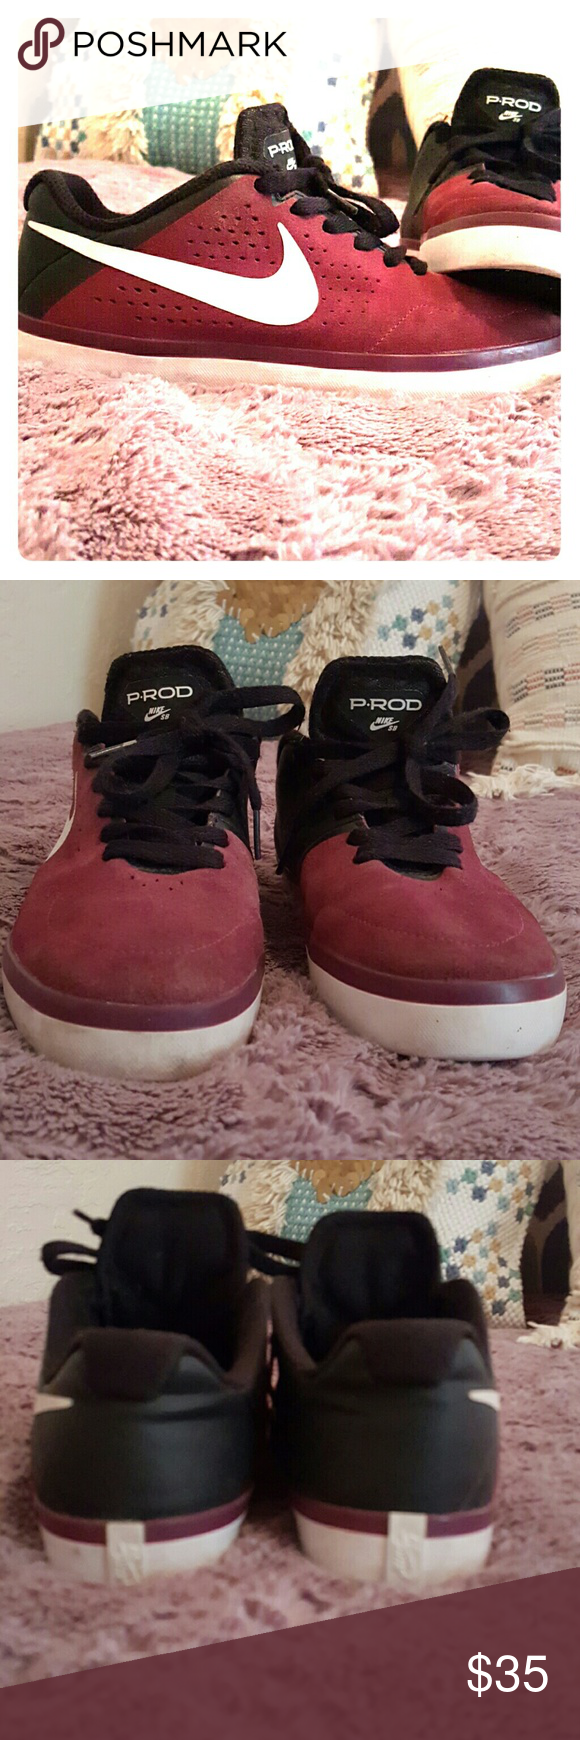 Nike P.Rod Very good condition, just past the uncomfortable breaking in stage. Super cute, really clean. To small, I wear like a 7 Ish and I'd force fit just cause there so cute. Size 6. Nike SB maroon black white. Make offer? Nike Shoes Athletic Shoes